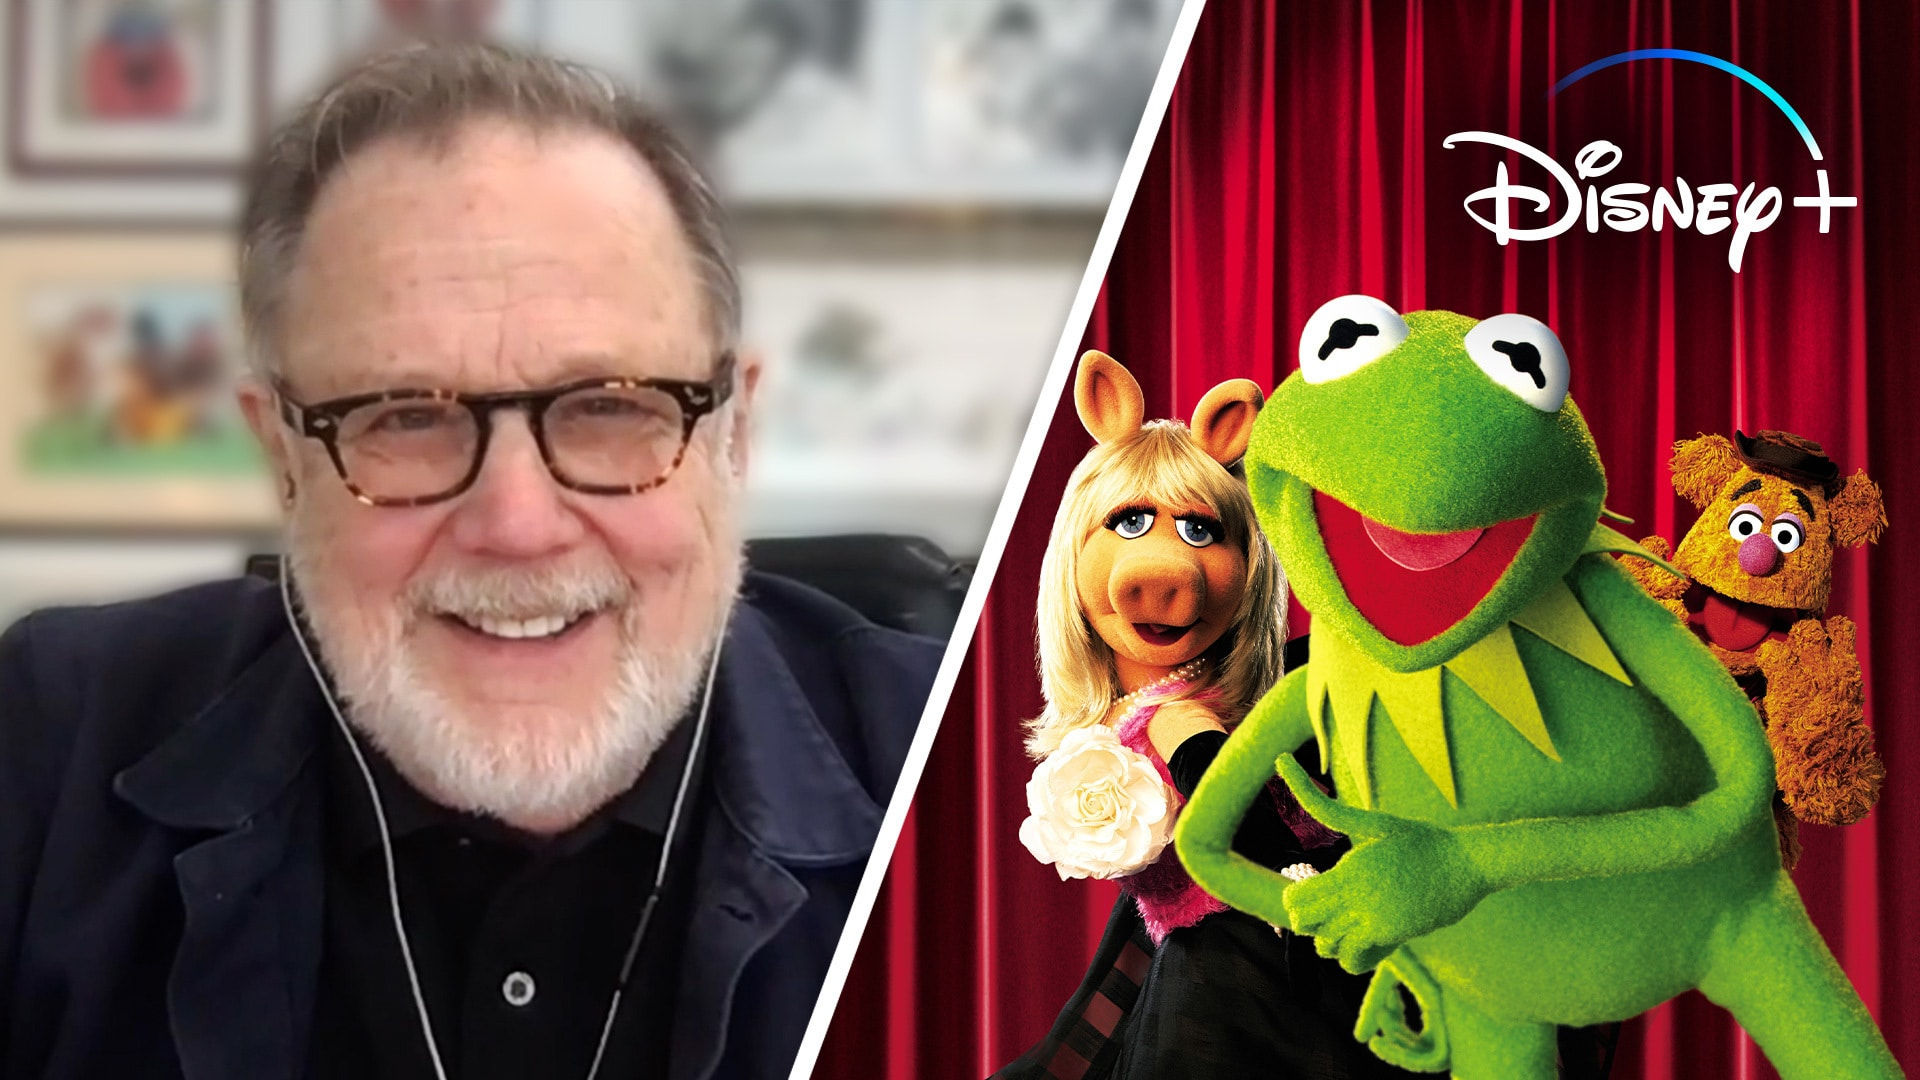 Dave Goelz of The Muppet Show | What's Up, Disney+